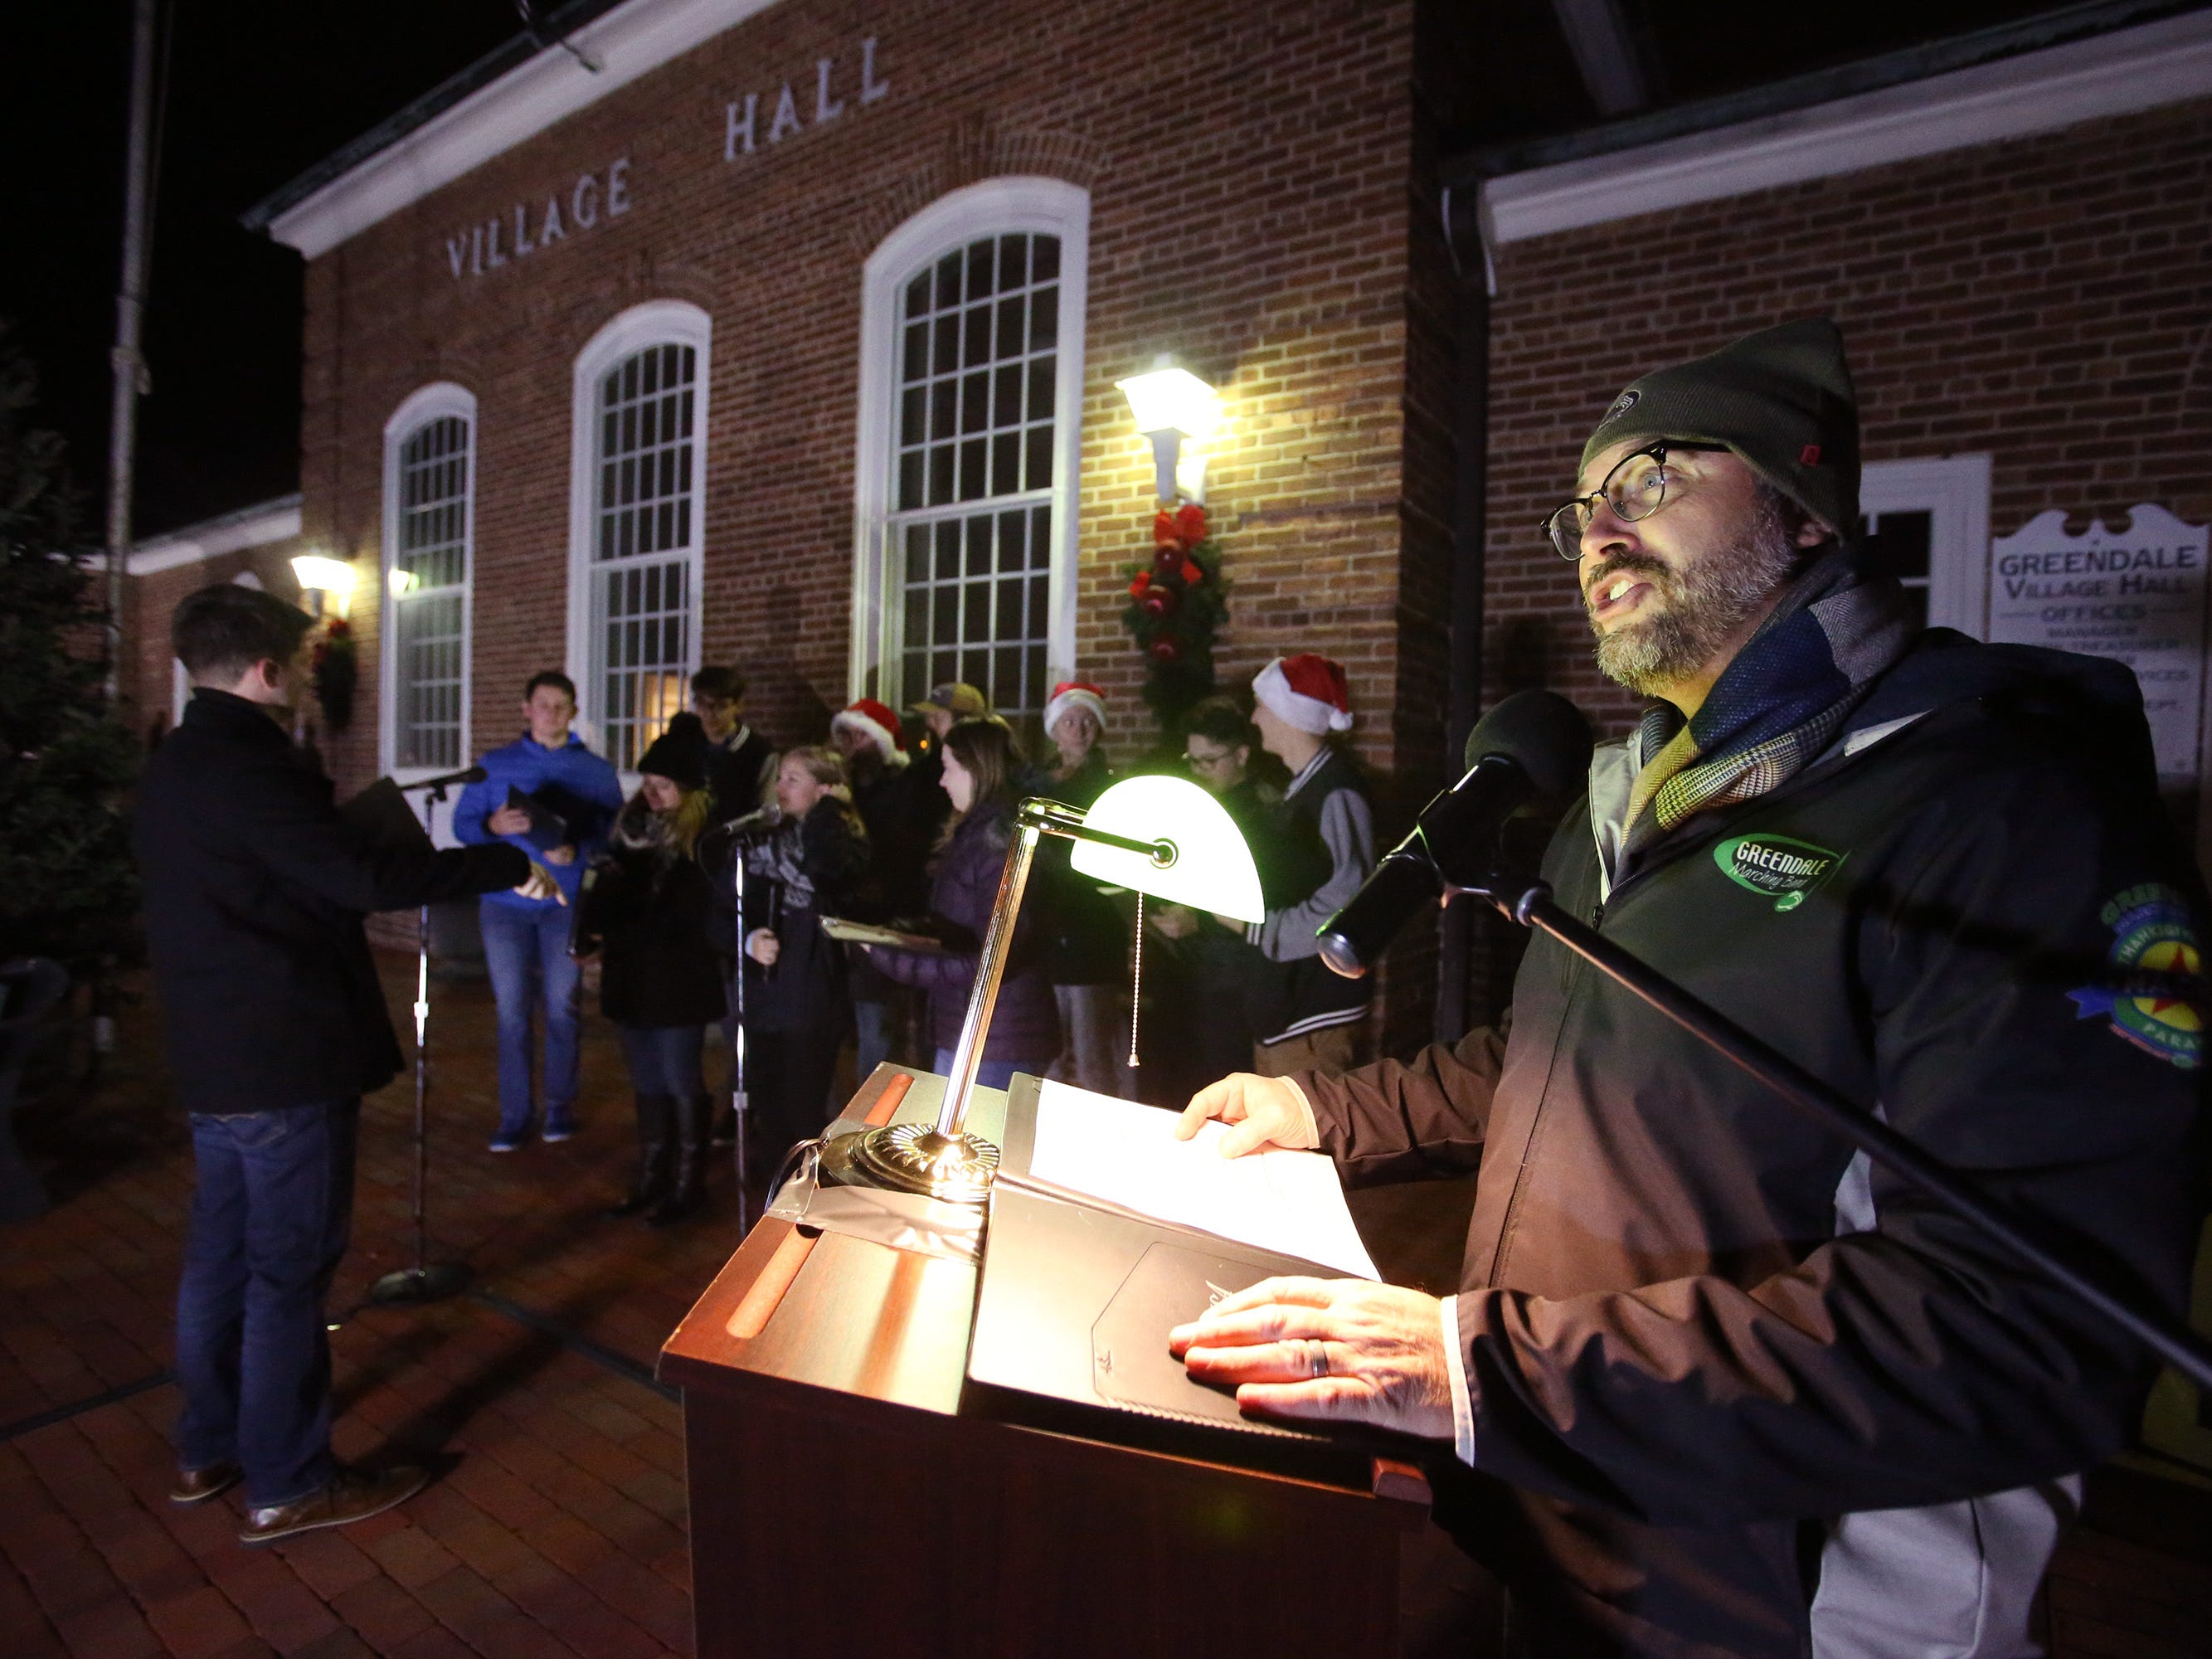 Dr. Gary Kiltz, superintendent of the Greendale school district, greets the crowd waiting for thousands of lights to illuminate and for Santa to arrive as part of Greendale's annual Tree Lighting in front of Village Hall on Nov. 23.